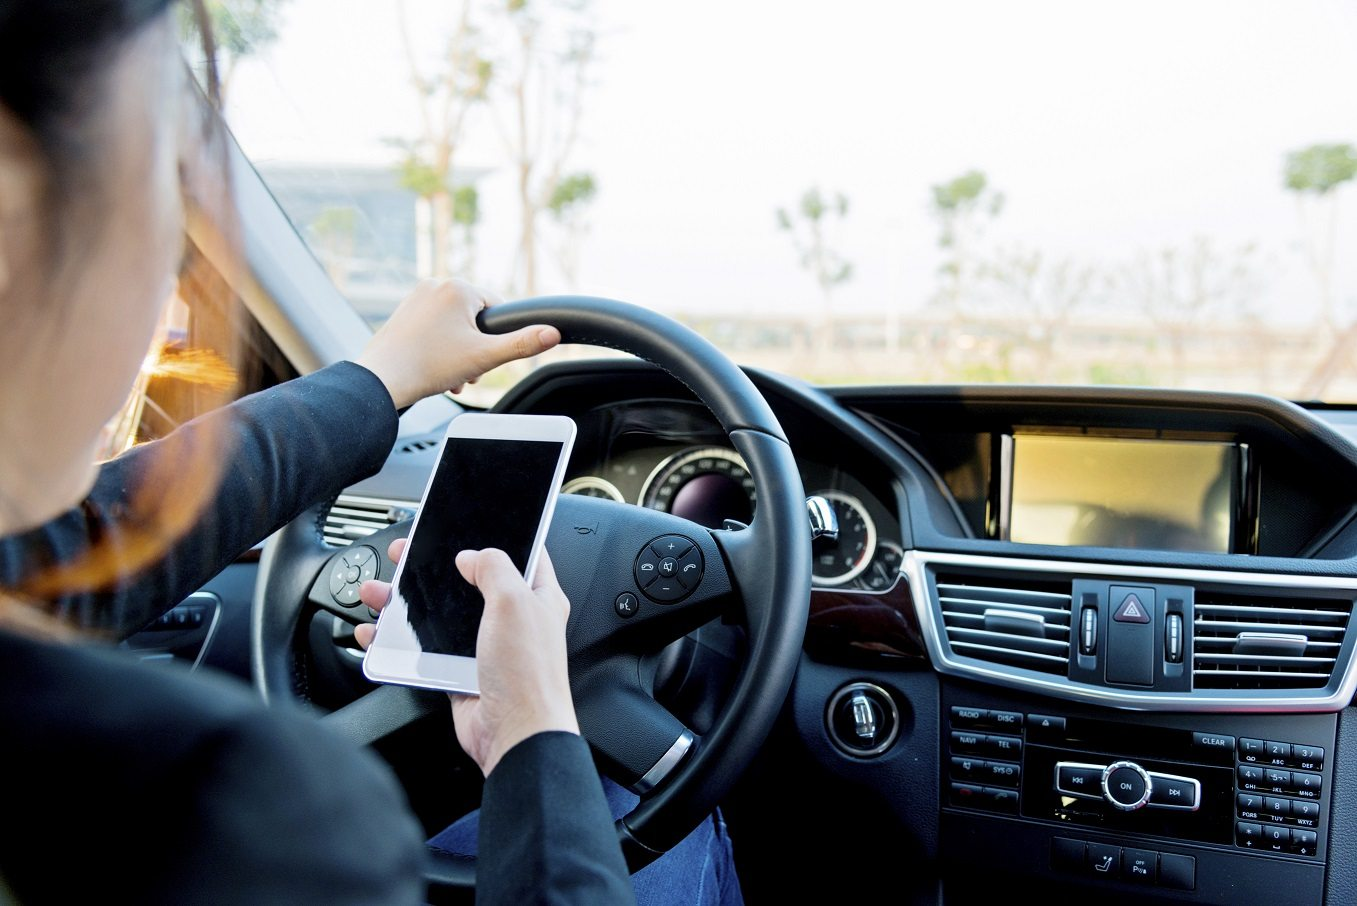 distracted drivers Activities that take drivers' attention off the road, including talking or texting on  cellphones, eating, conversing with passengers and other distractions, are a  major.